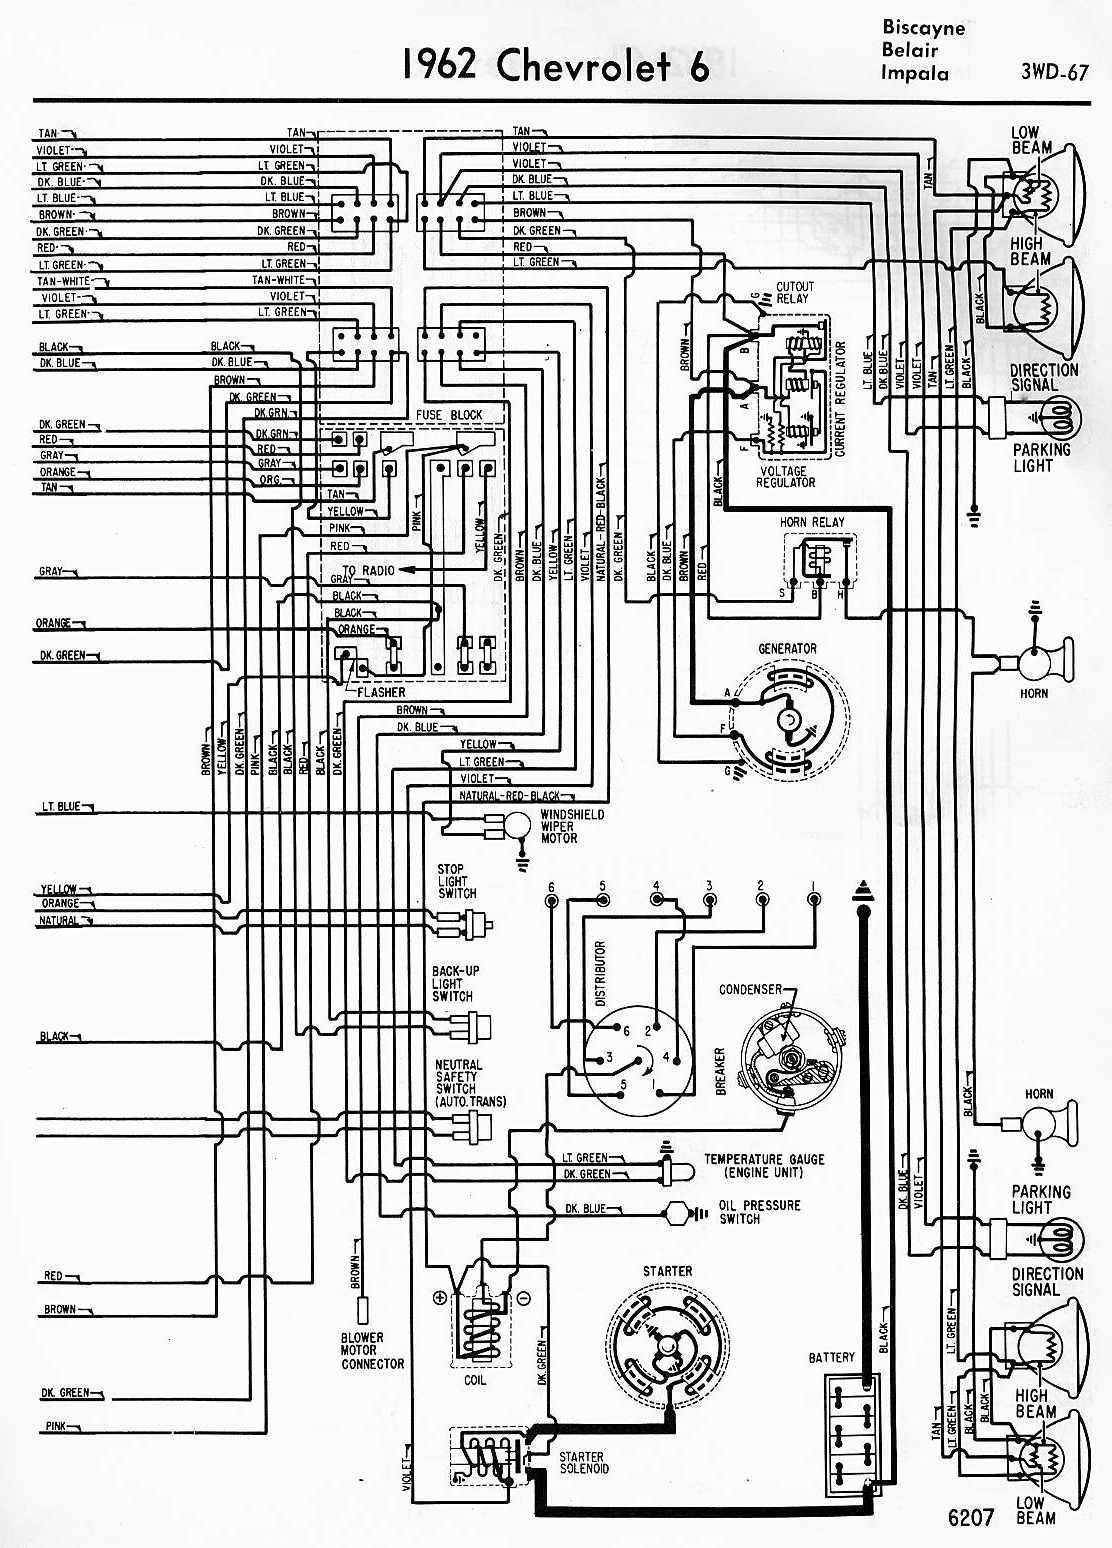 1970 impala wiring harness wiring diagram week 1970 impala wiring harness manual e book 1970 impala [ 1112 x 1548 Pixel ]